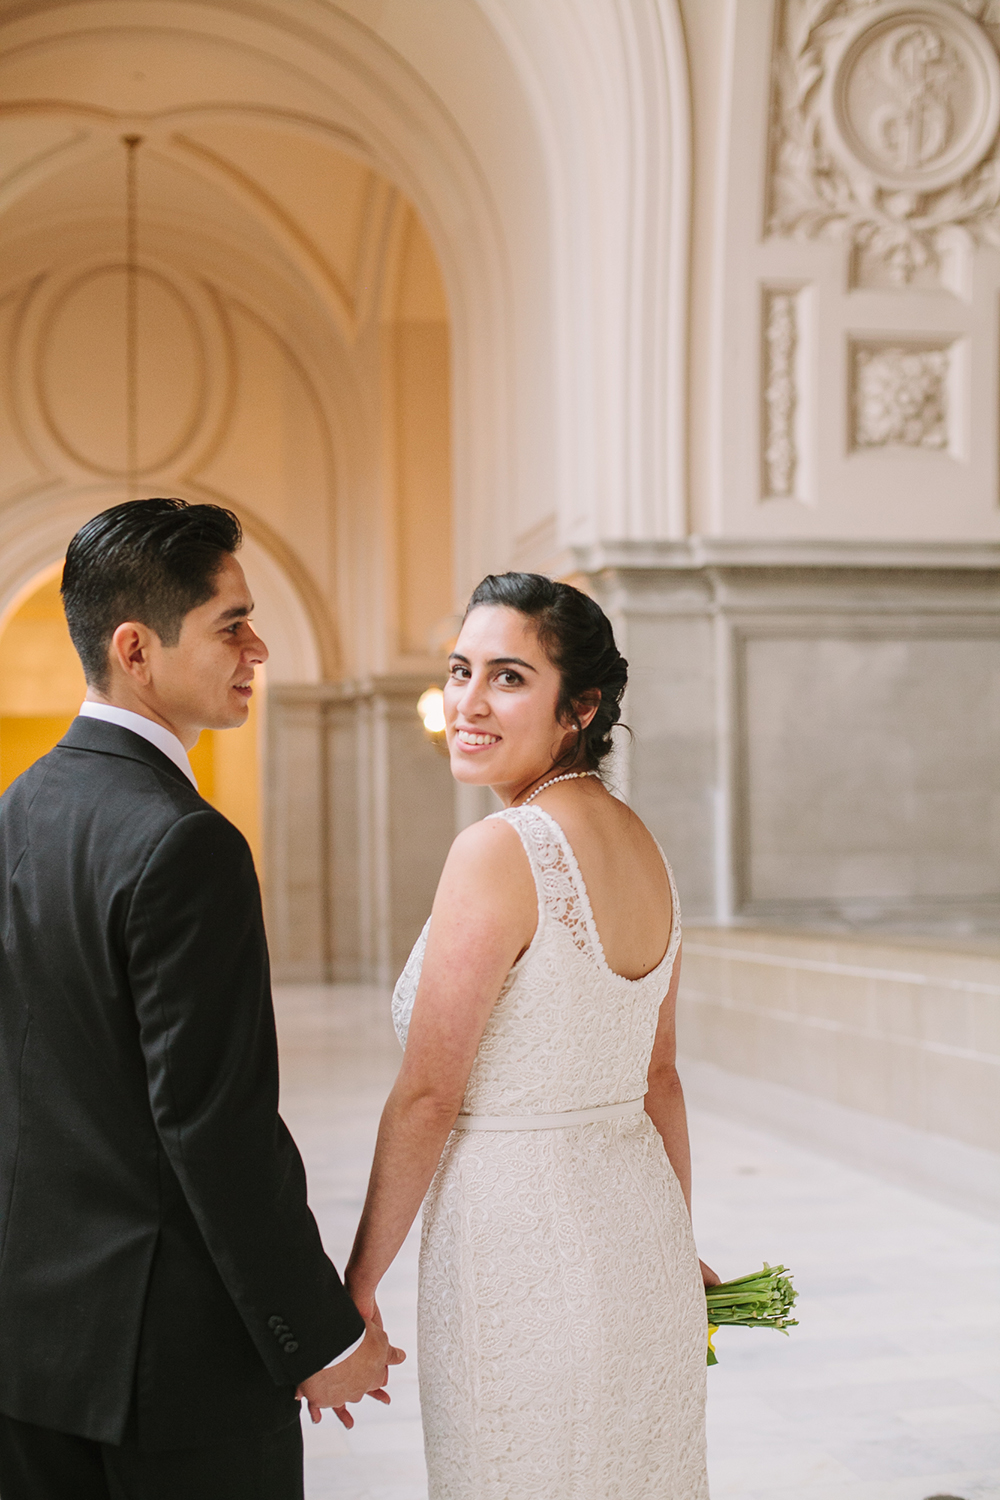 wedding-at-san-francisco-city-hall-12.html